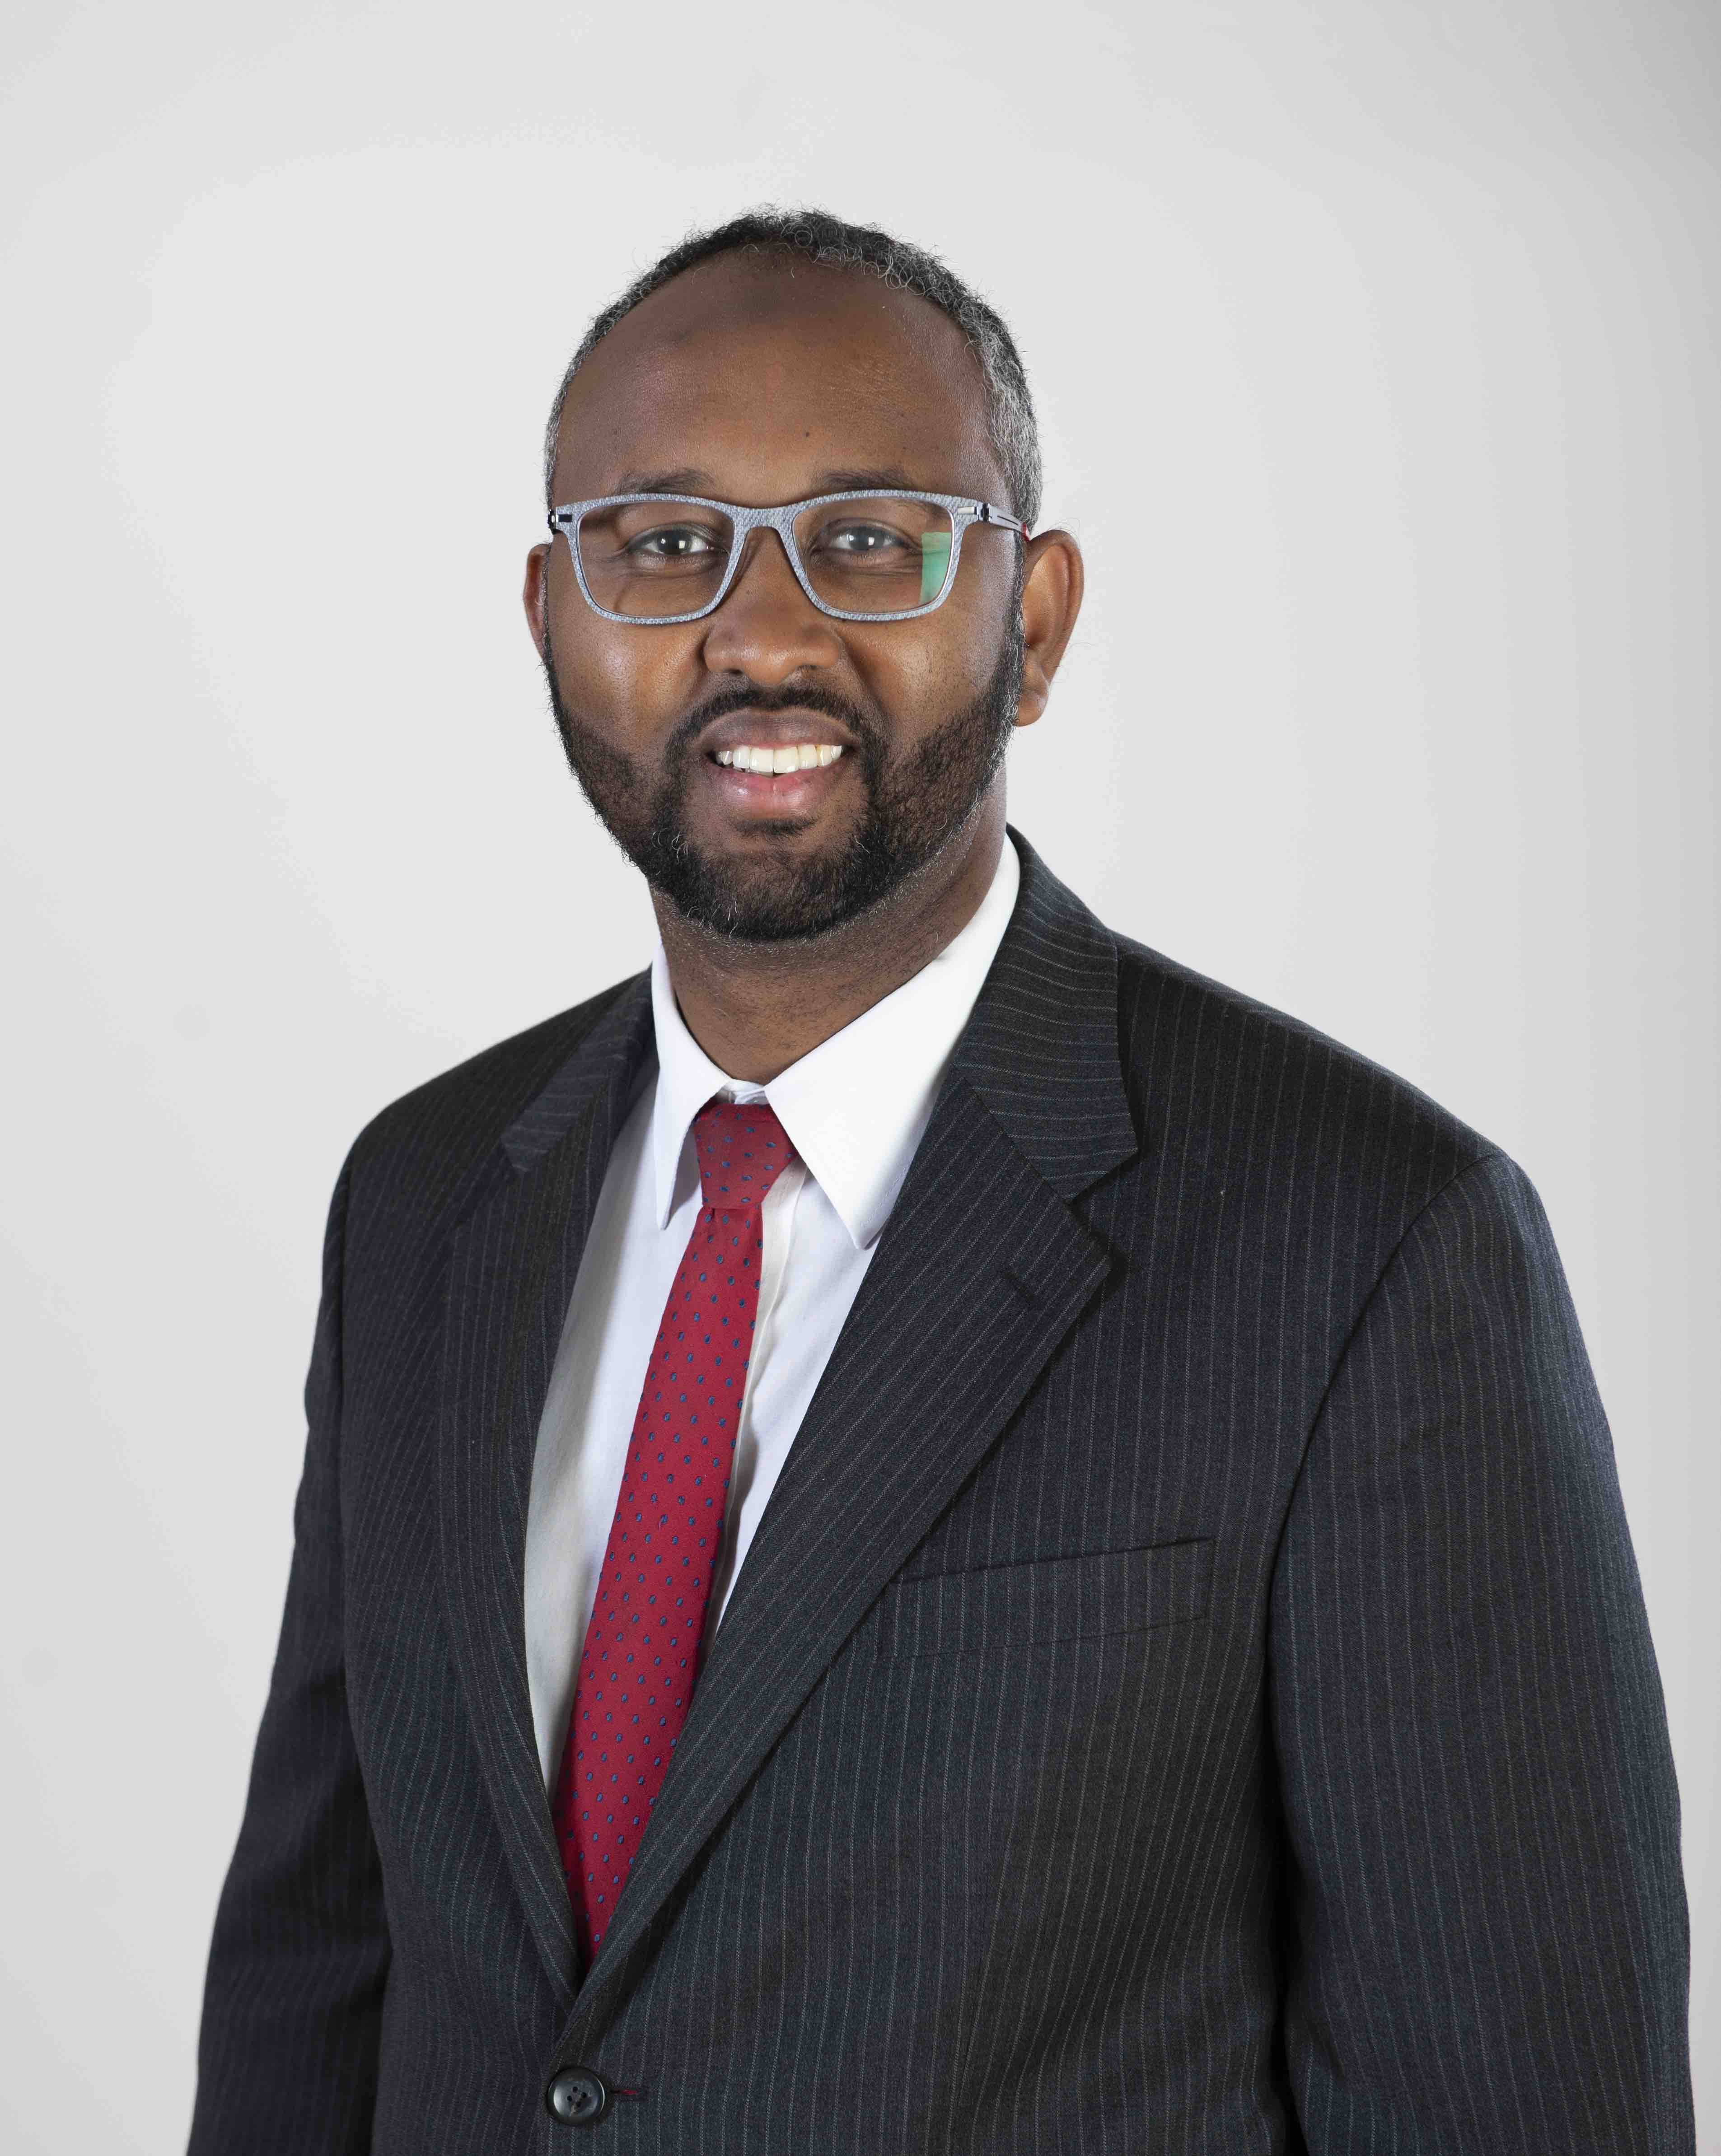 Convocation/Bartling Lecture: Jaylani Hussein, Oct 17, Buetow (10:30-11:25)